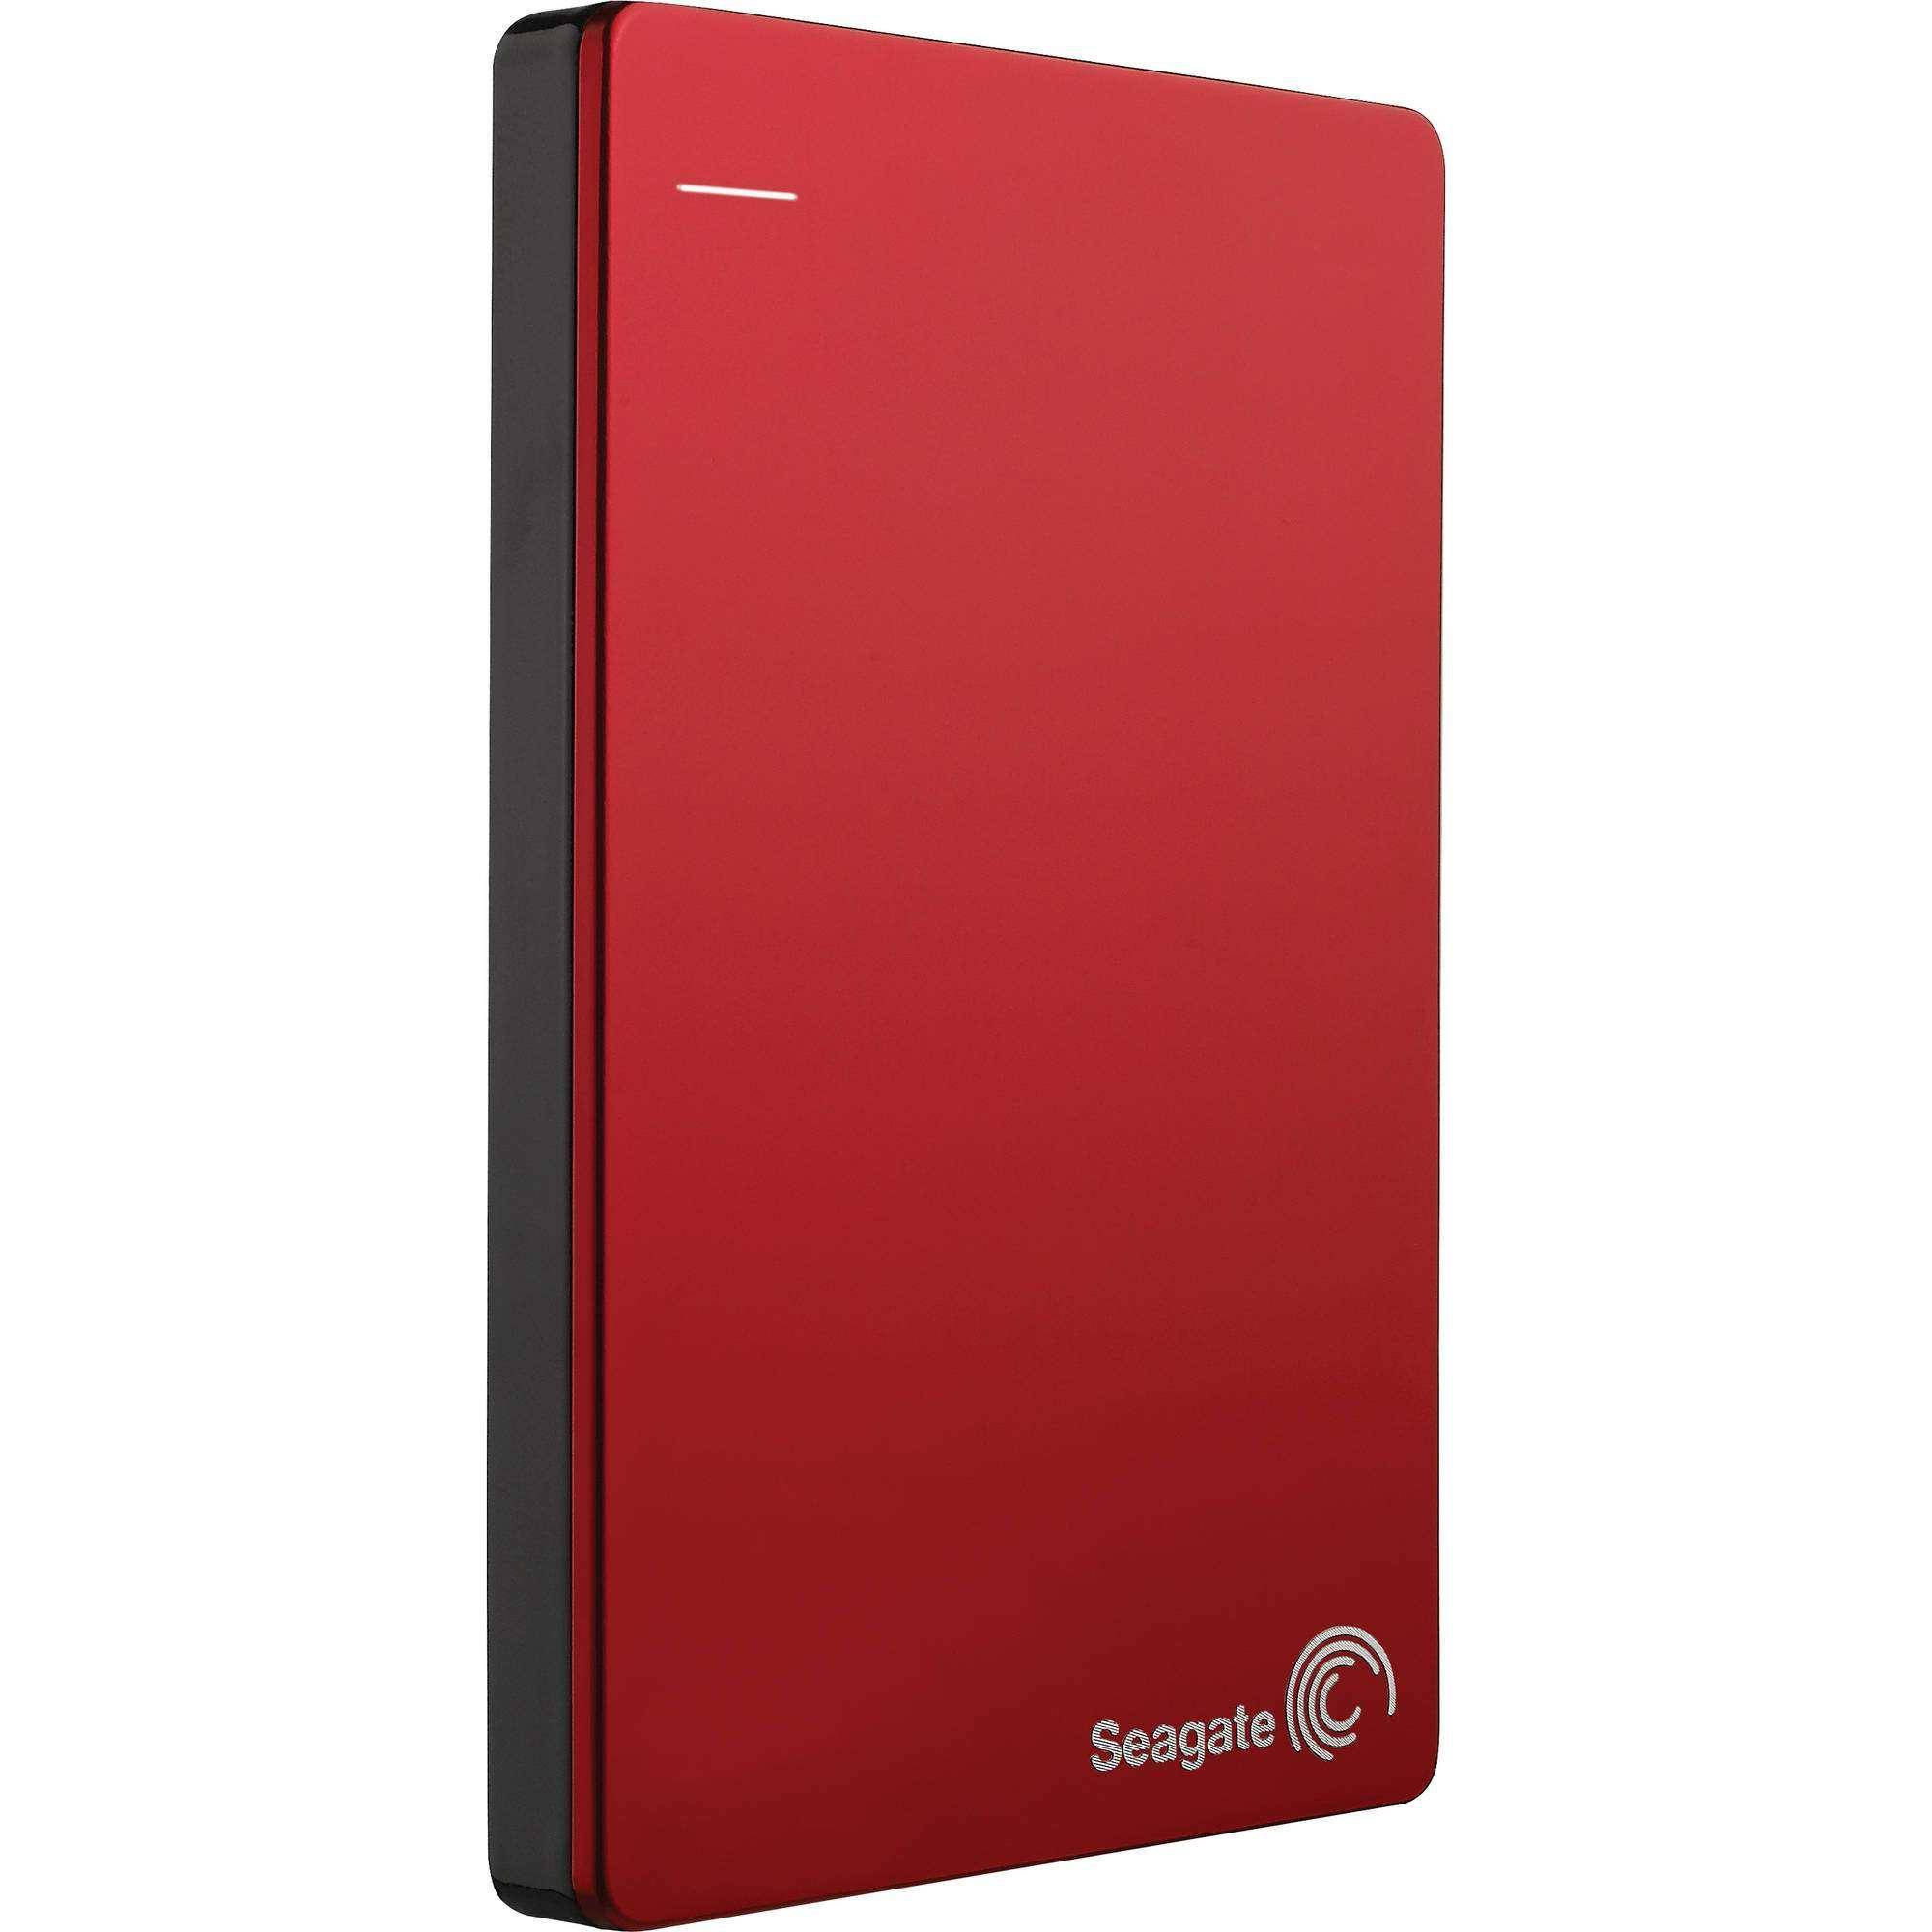 SEAGATE Disque dur externe 2,5'' 1 To USB 3.0 Seagate Backup Plus Slim STCD500102 Rouge